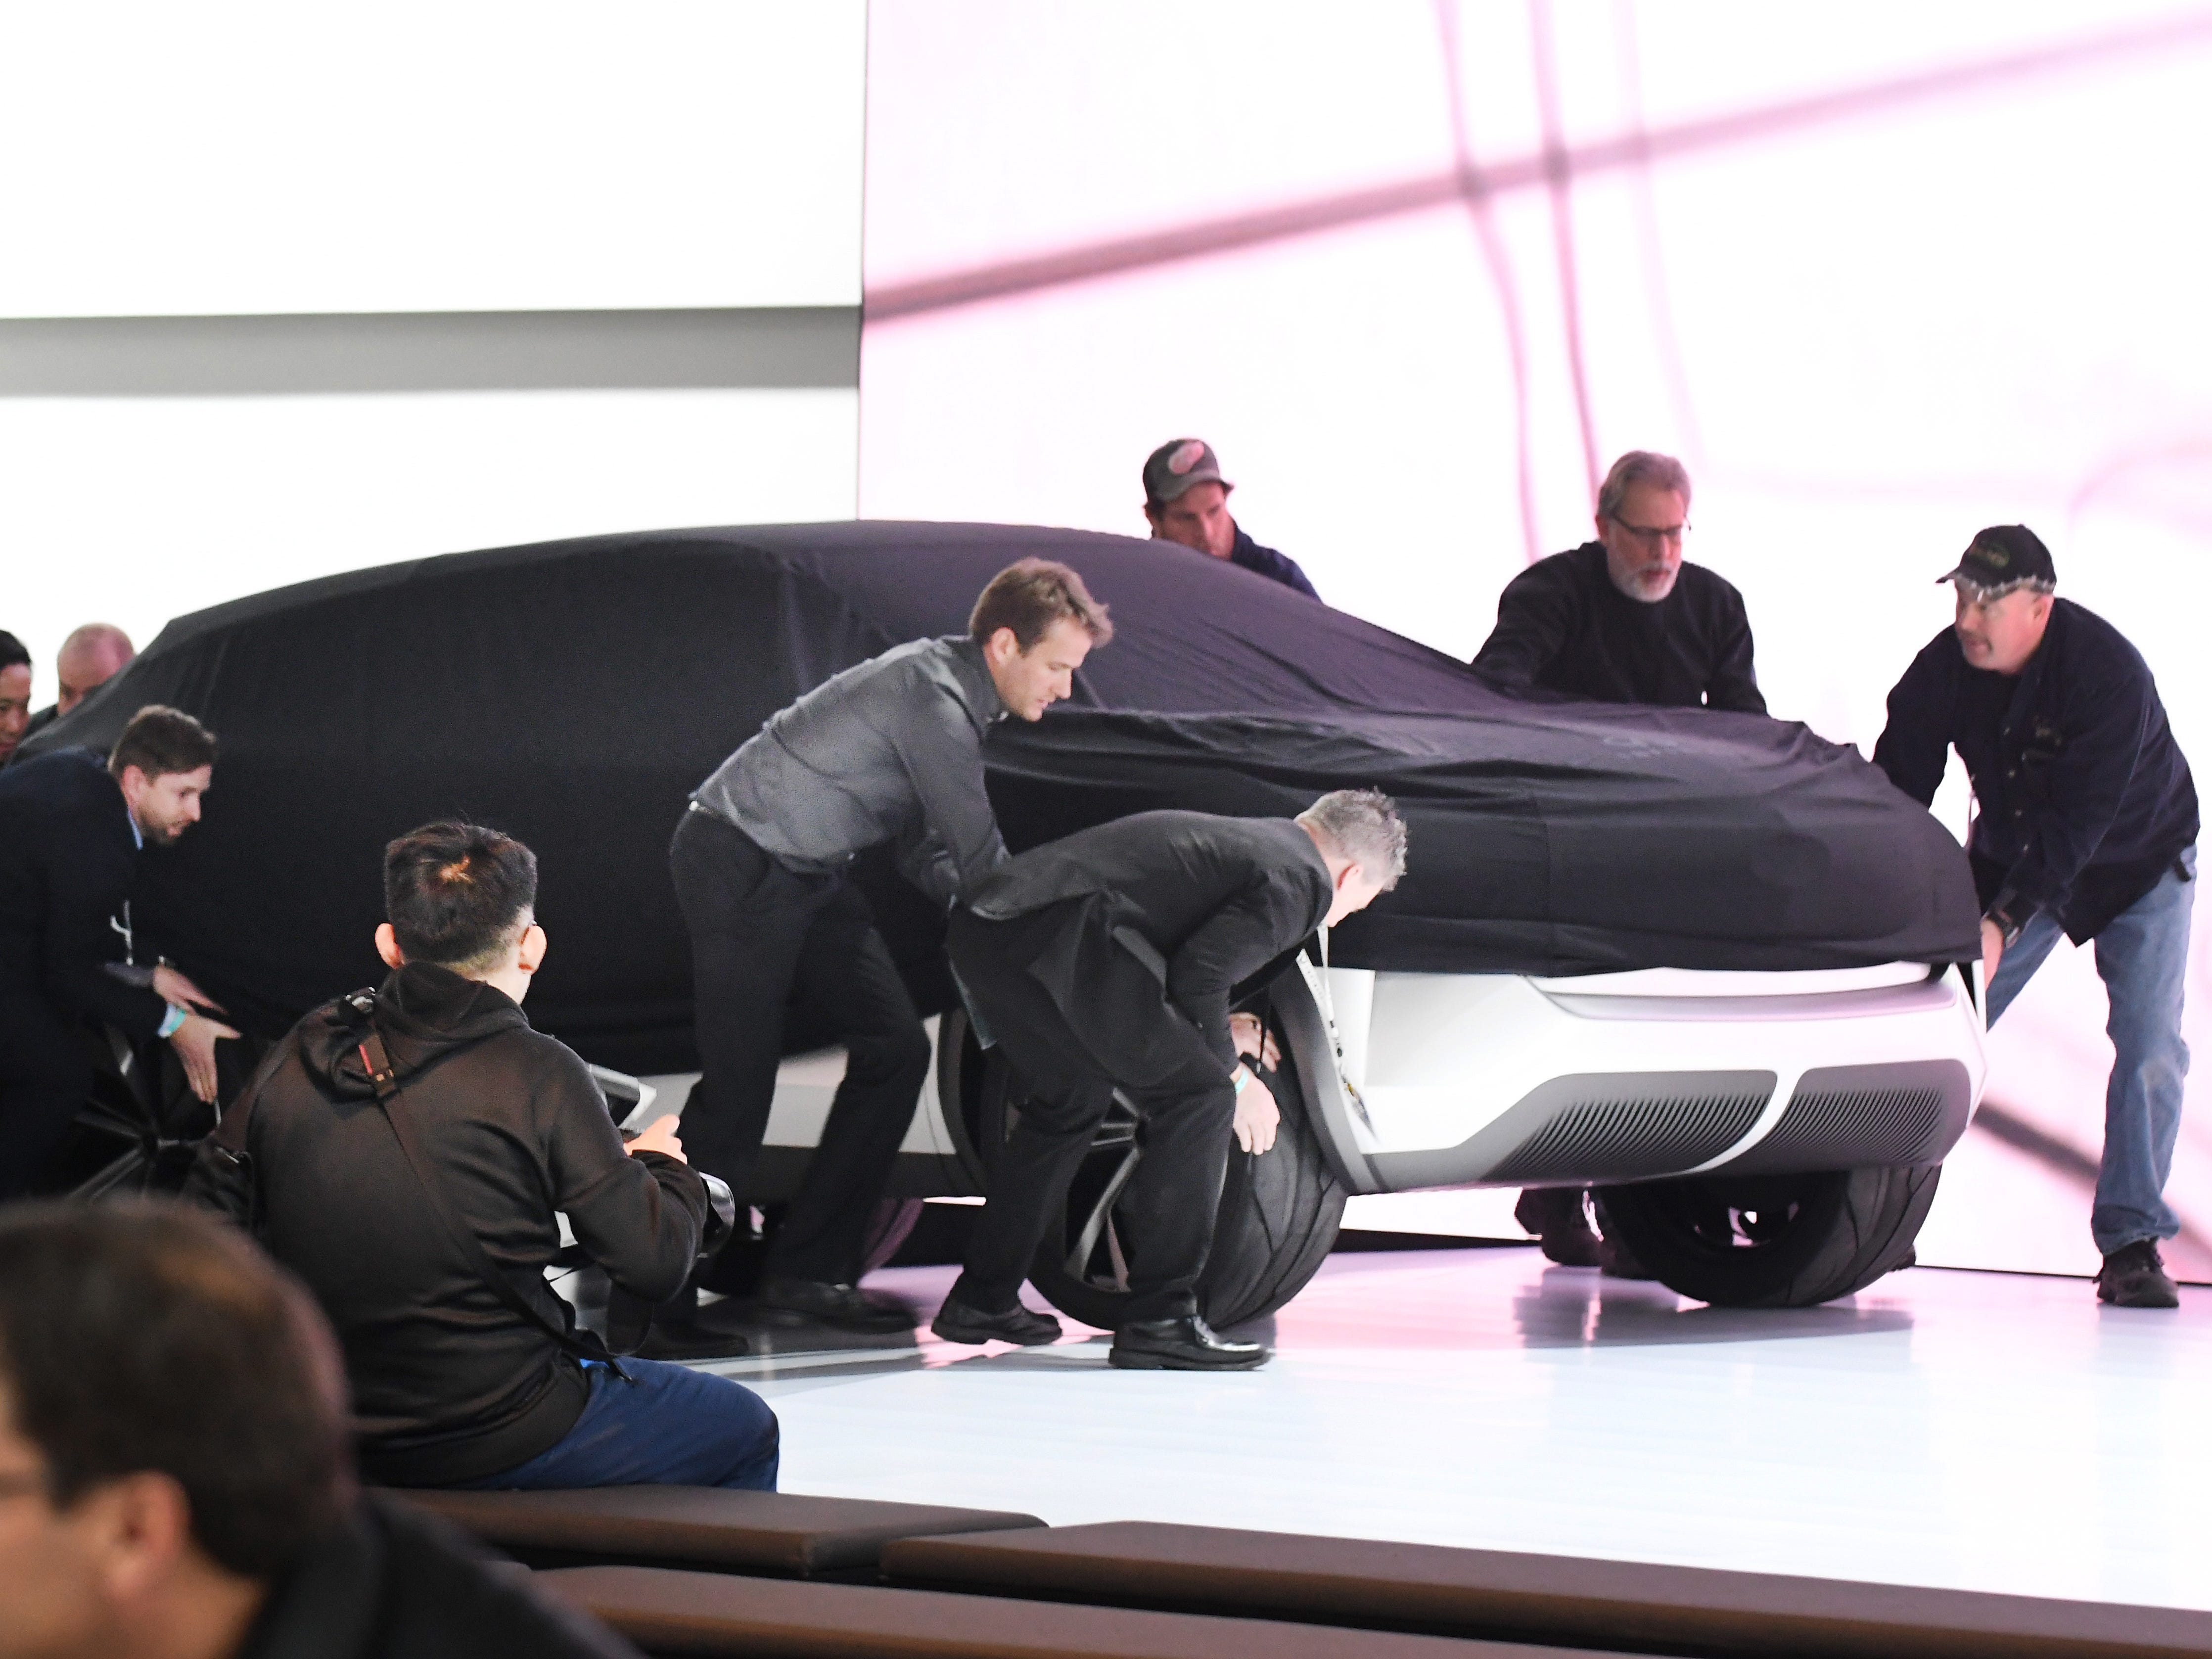 Infiniti QX Inspiration concept vehicle, which did not make it to the stage during the reveal, is rolled to the Infiniti display at the North American International Auto Show media preview day at Cobo Center in Detroit on Jan. 14, 2019.